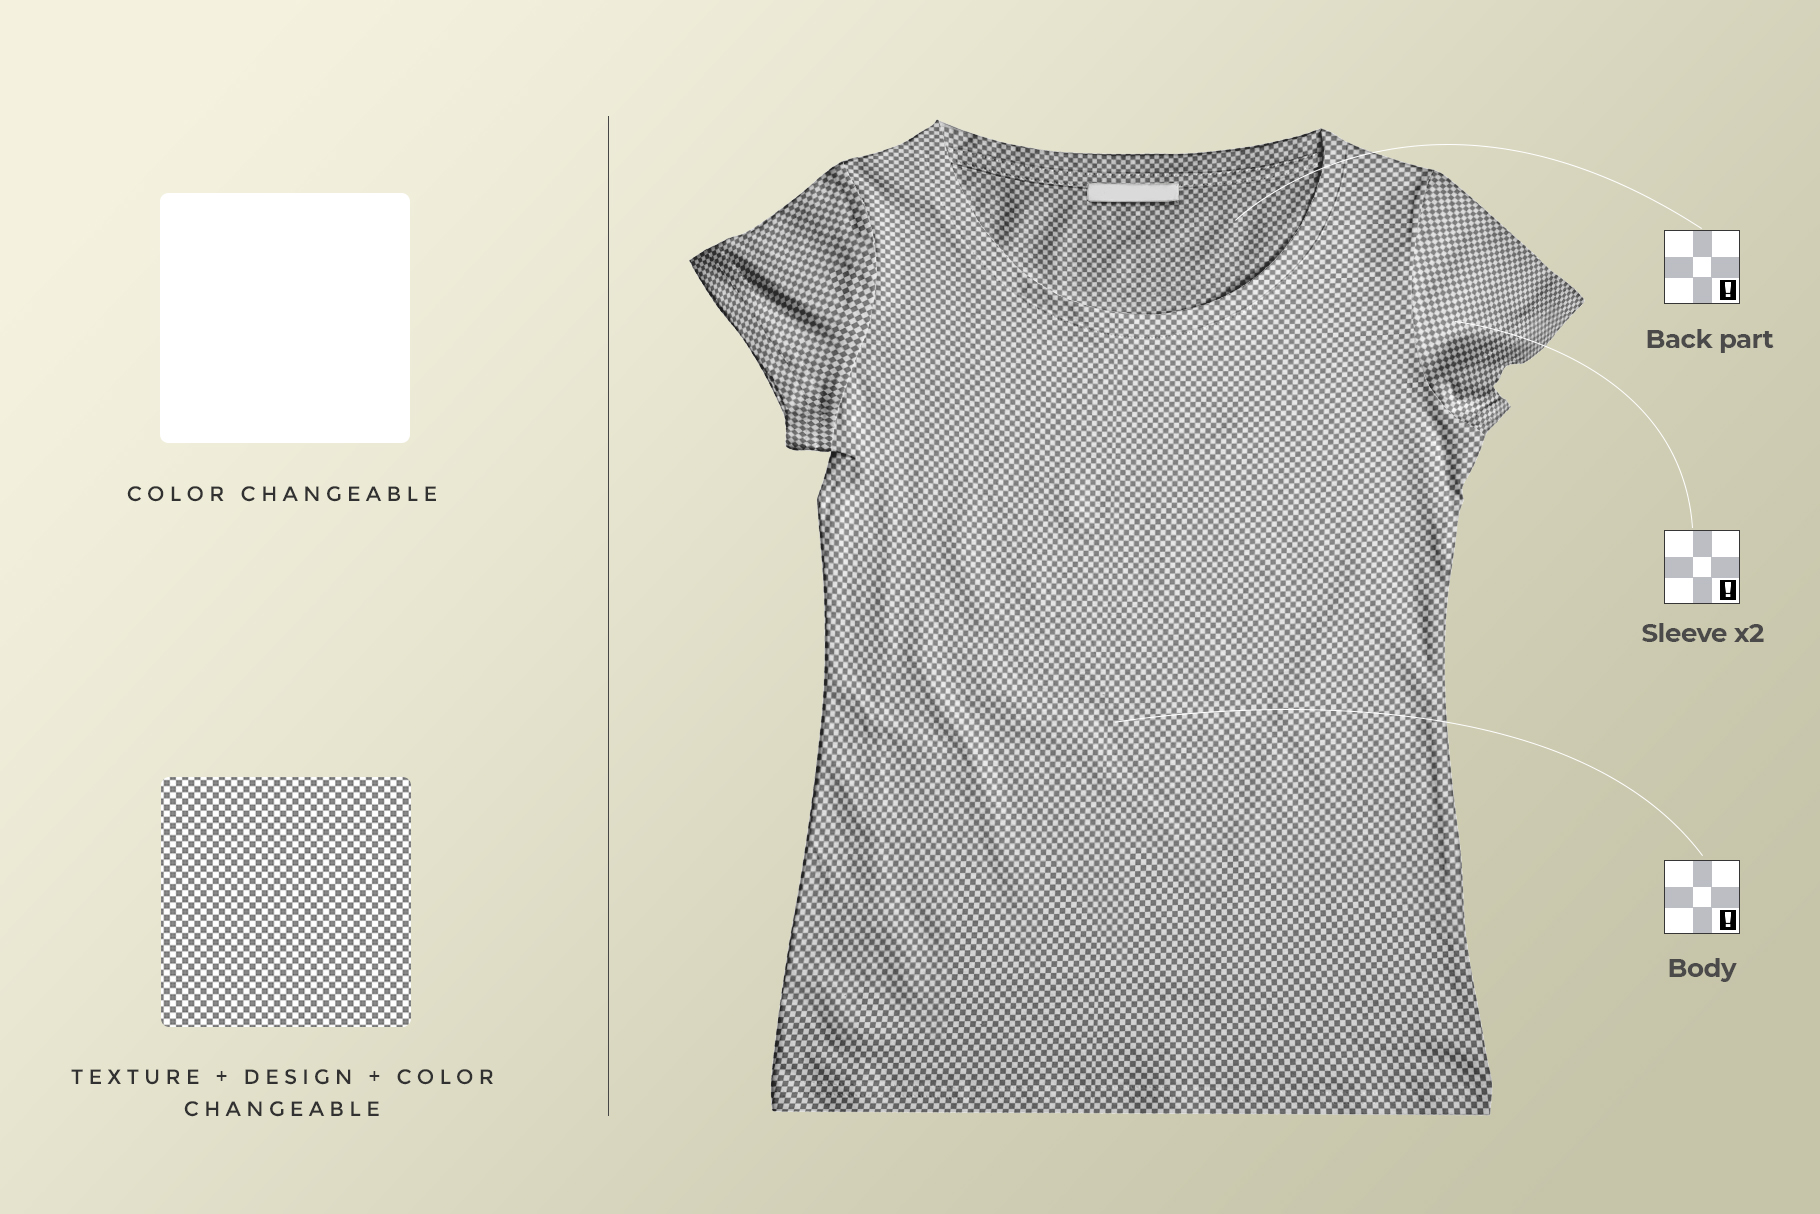 multiple-collar-type-t-shirt-mockup-image-preview-7